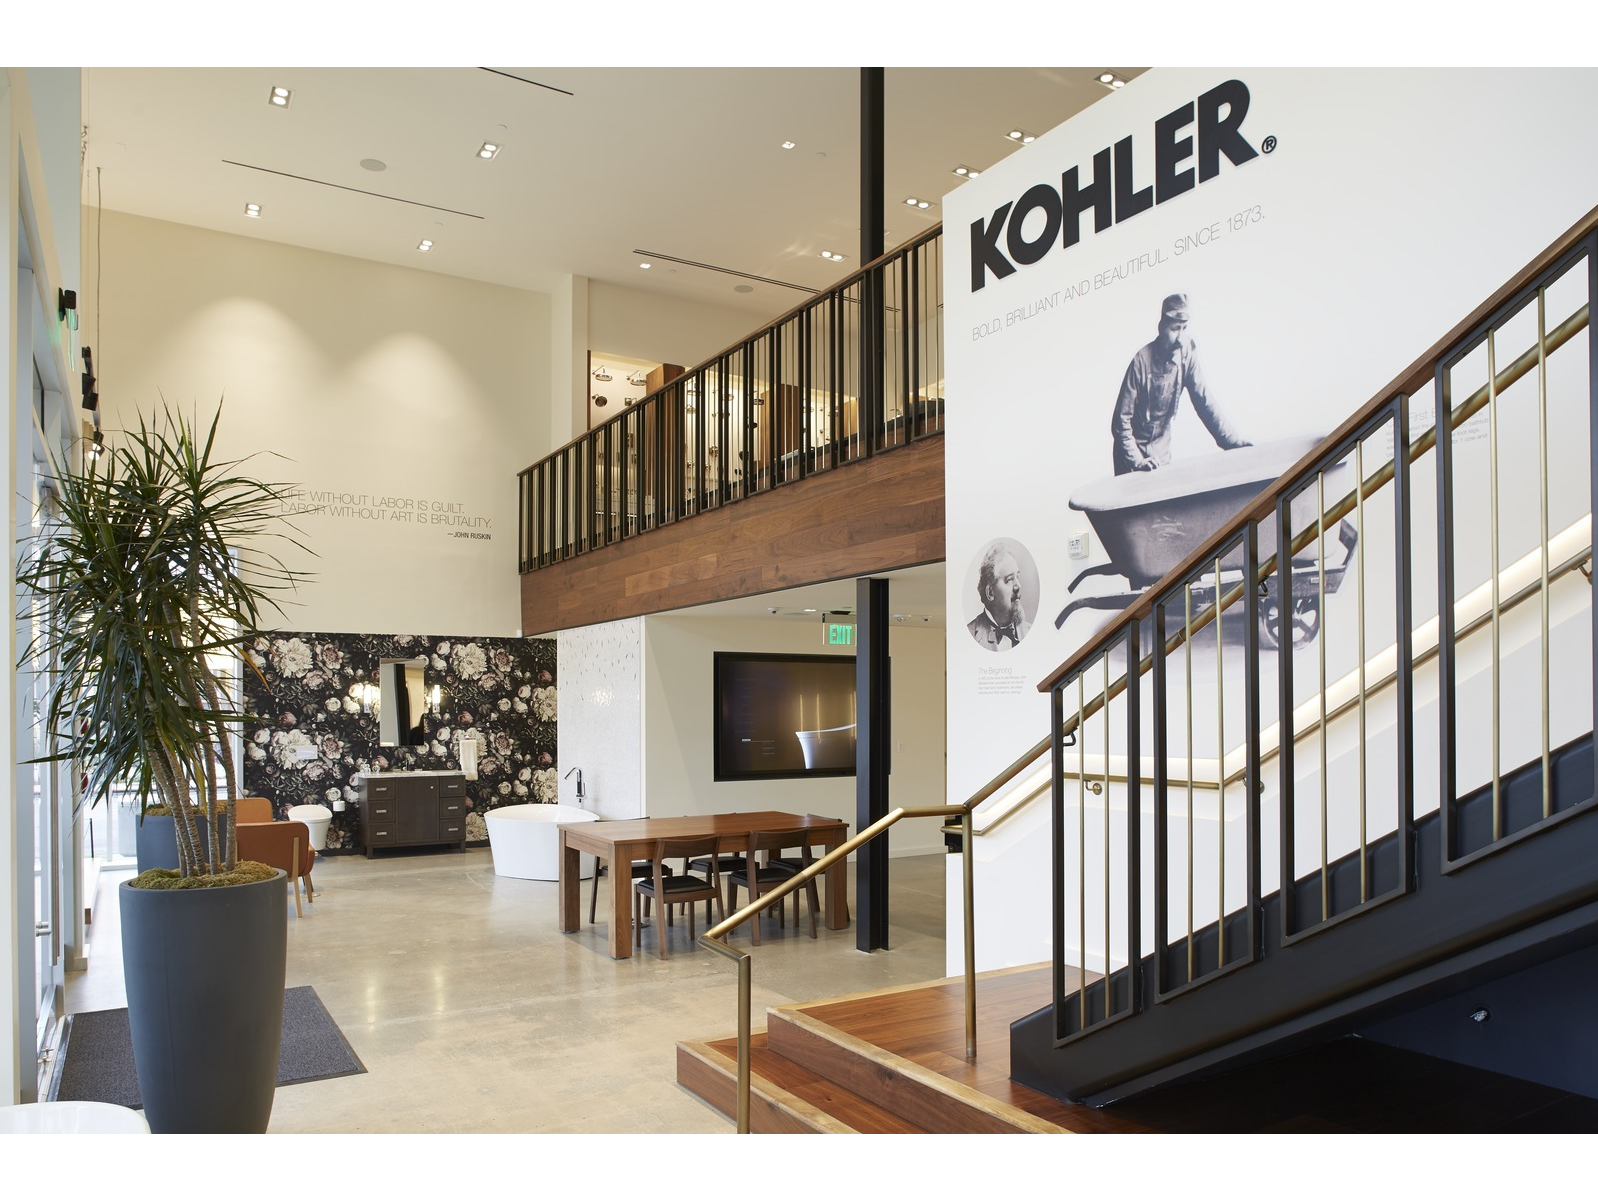 KOHLER Experience Center